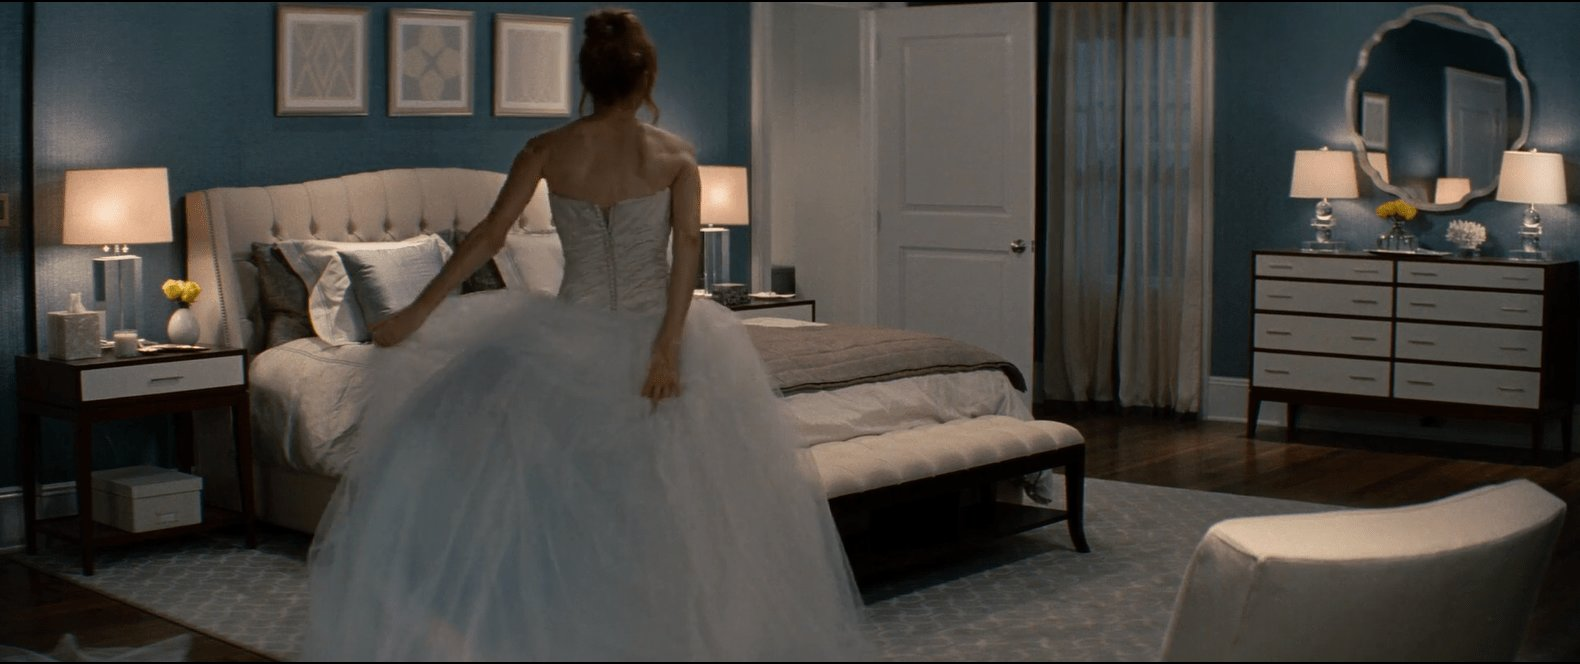 Best The Other Woman Bedroom Movies Set Up Pinterest With Pictures